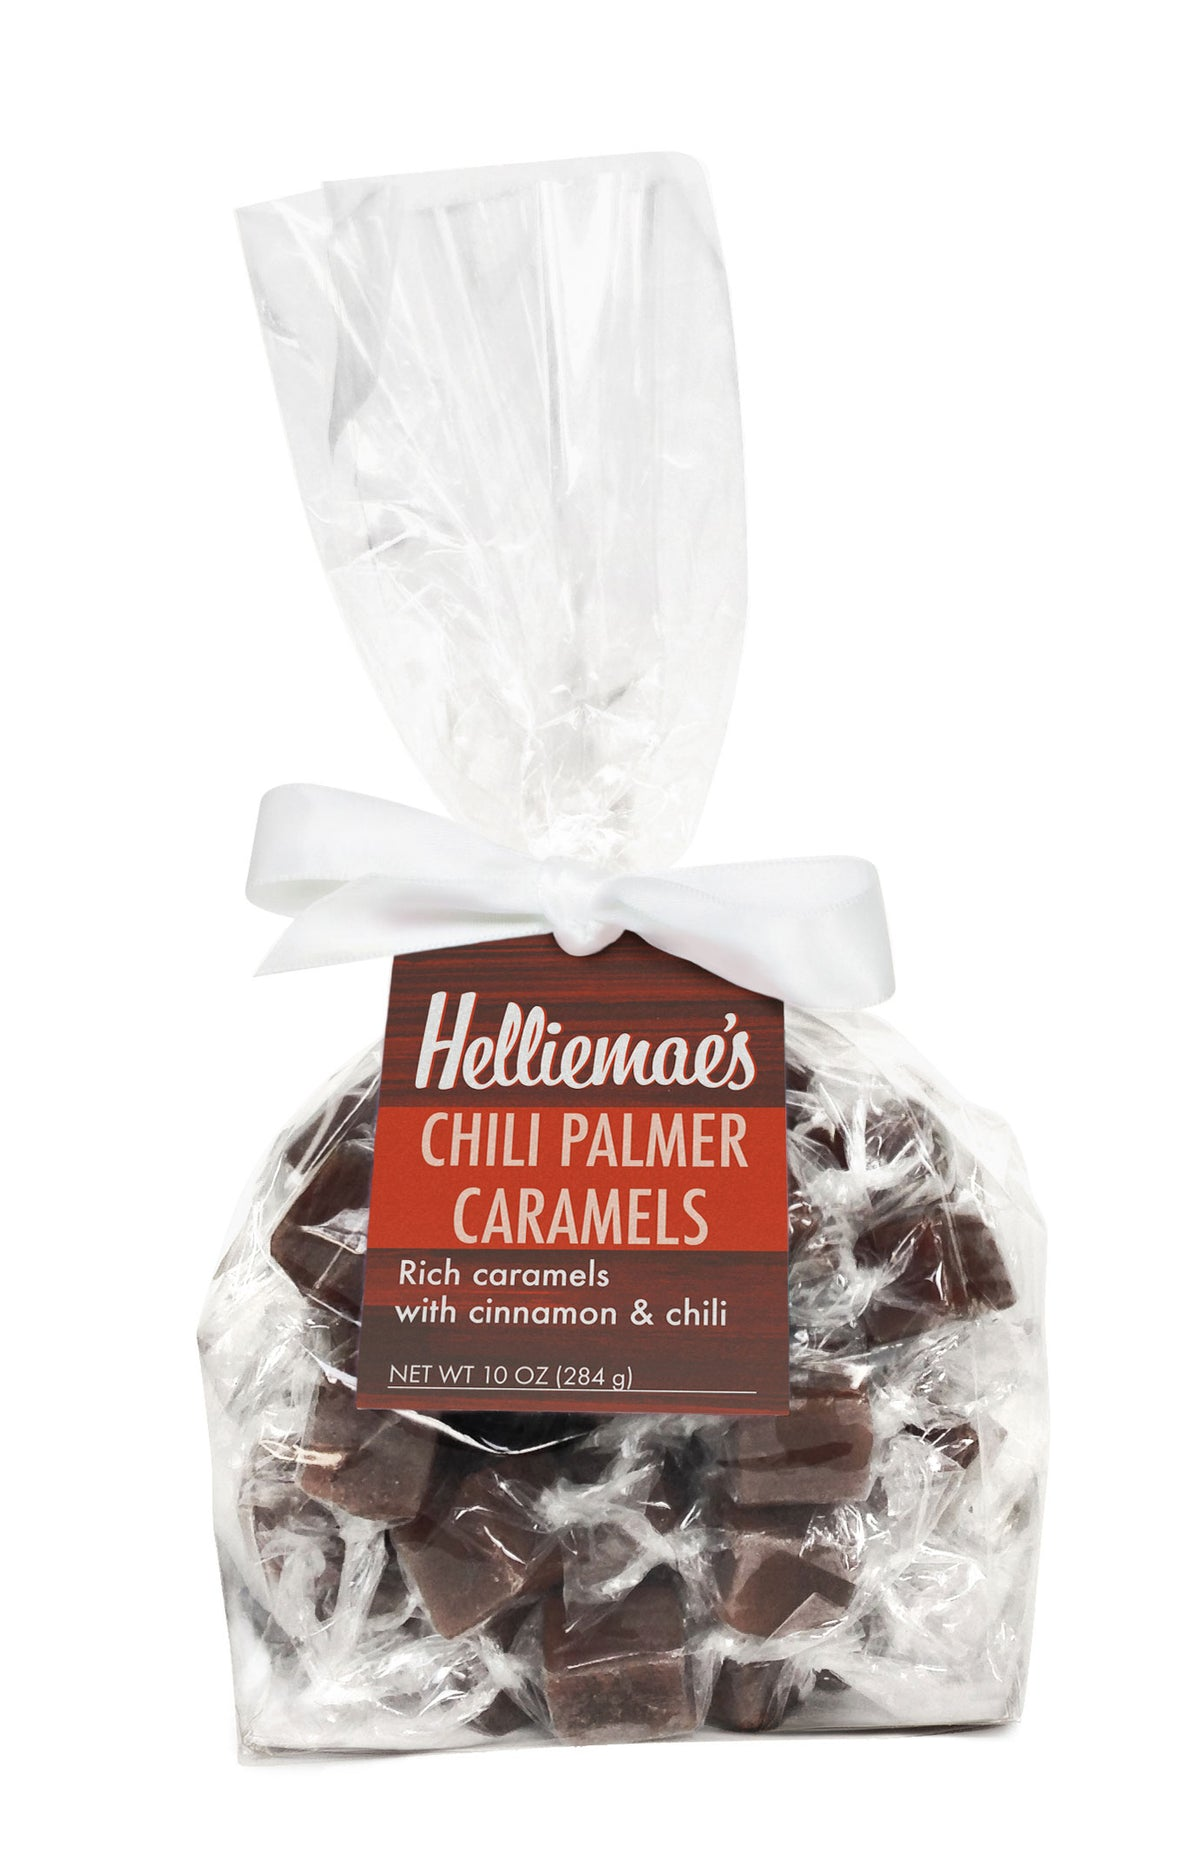 Helliemae's Chili Palmer Caramels large gift bag, clear cello bag with gathered top, fastened with white satin ribbon and colorful orange hangtag, with effect of milk paint on a barn wall.